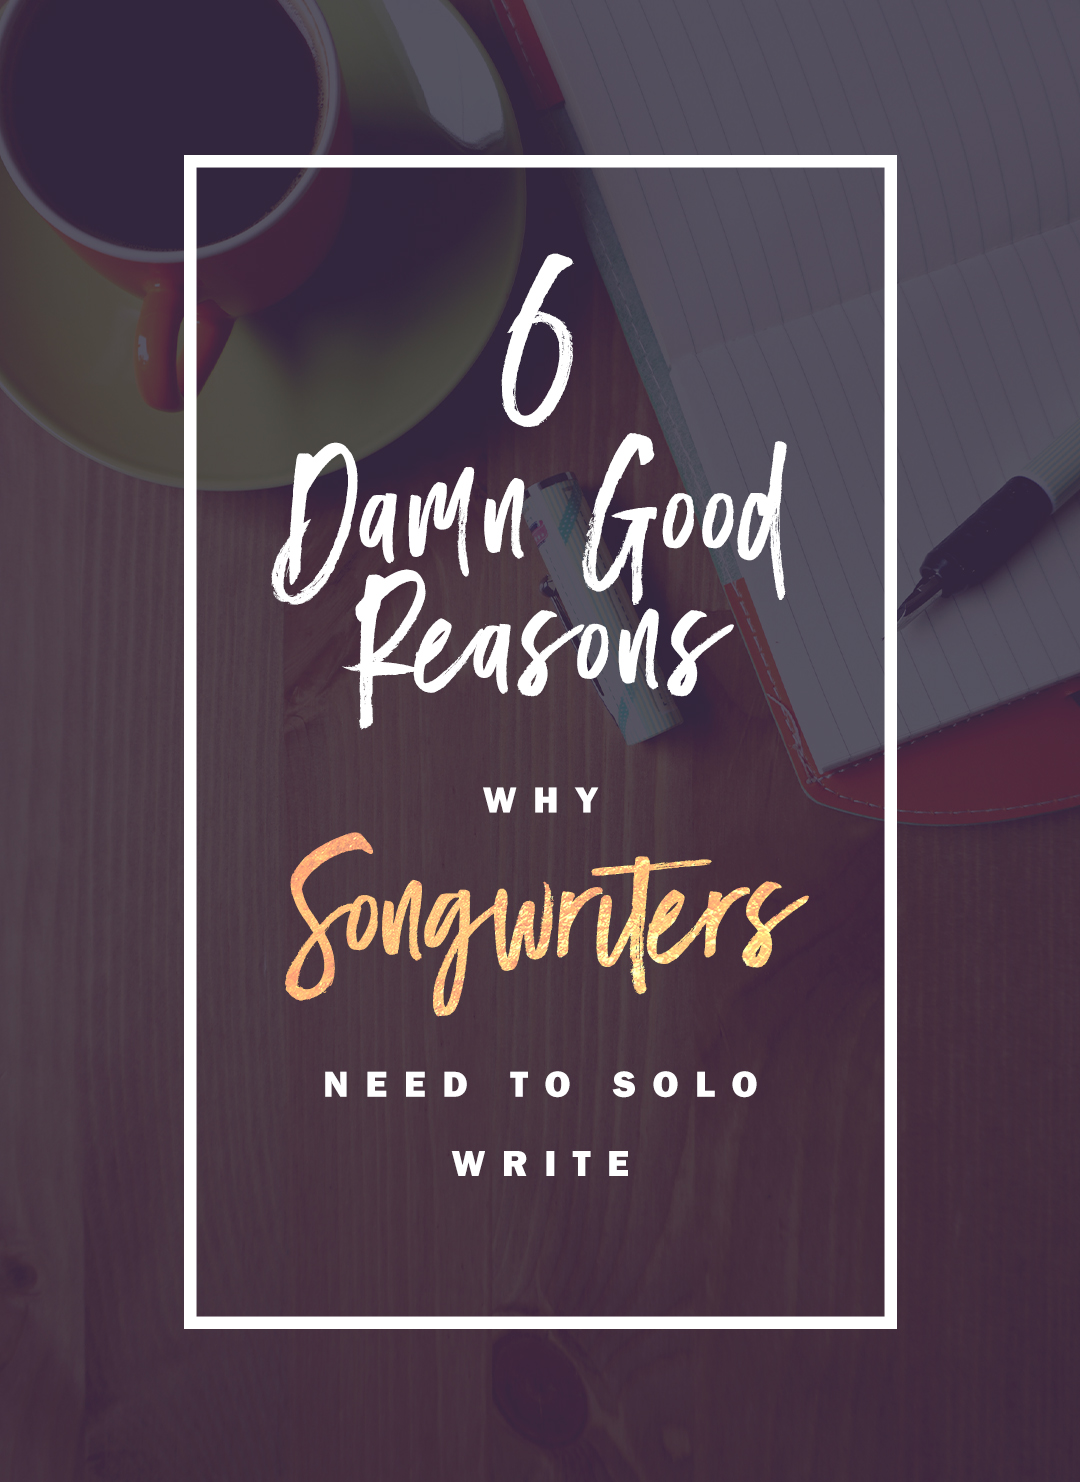 Every songwriter still needs to solo write